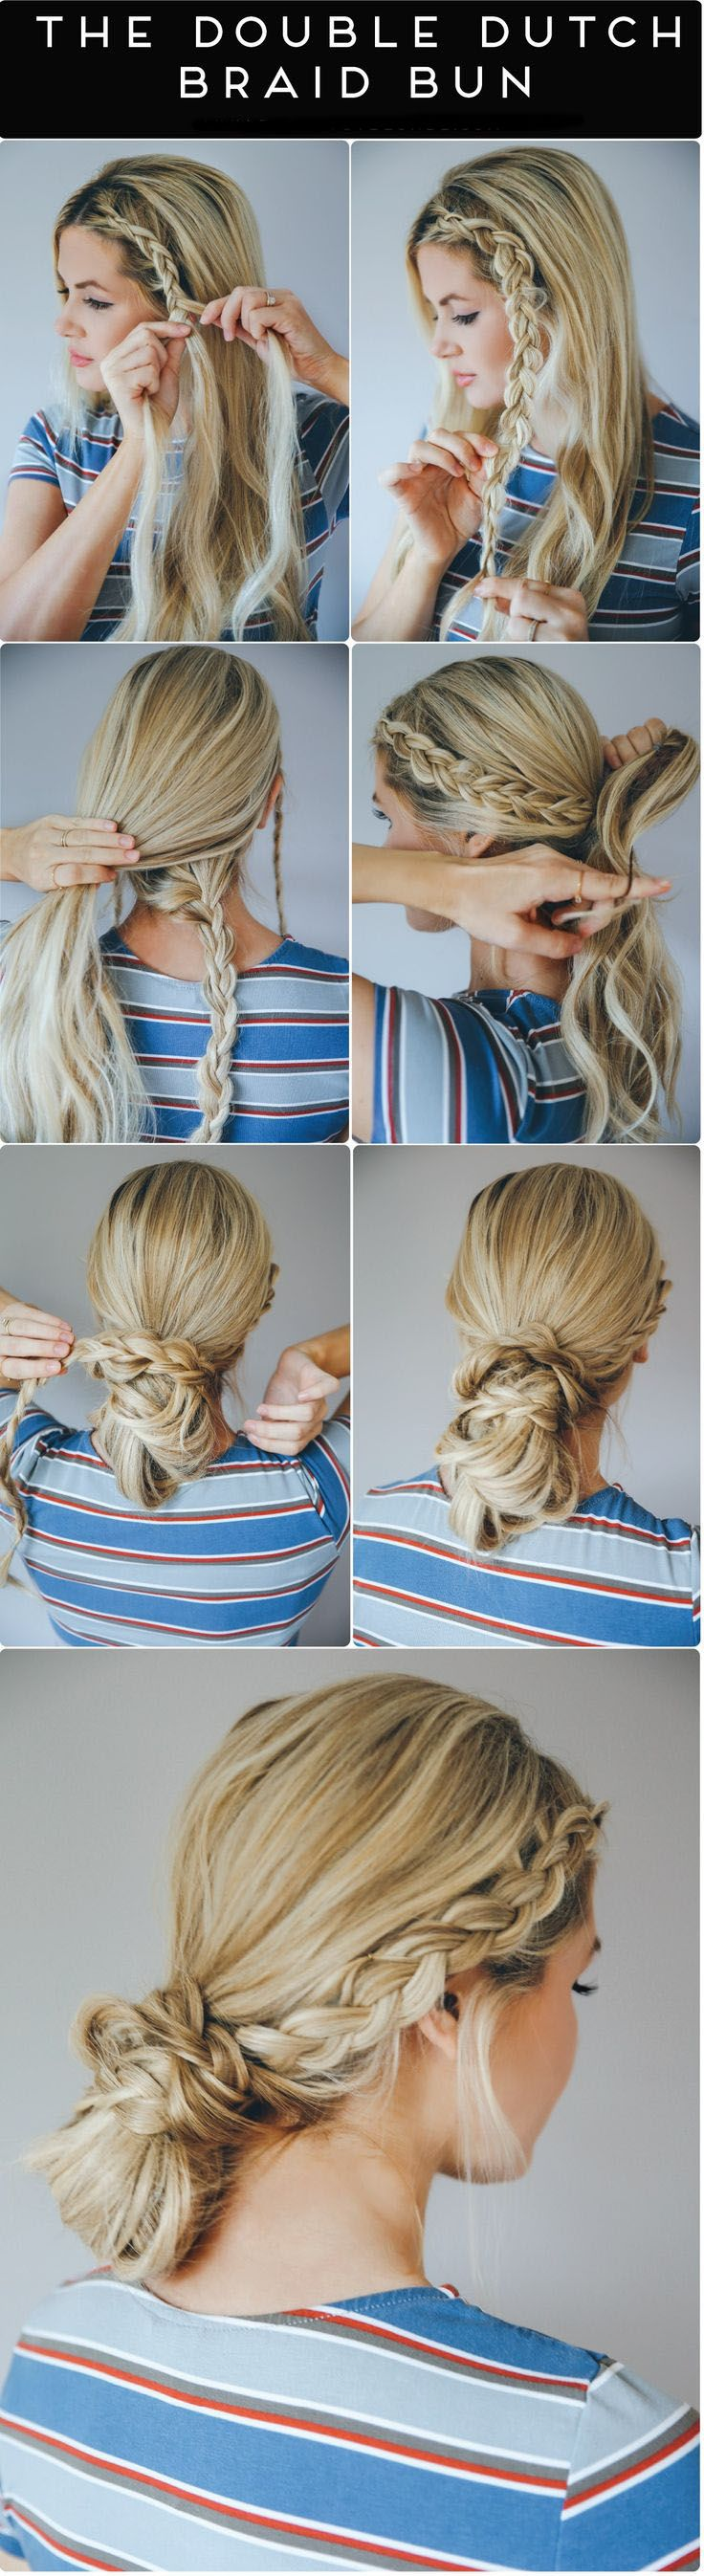 103 best Braids images on Pinterest